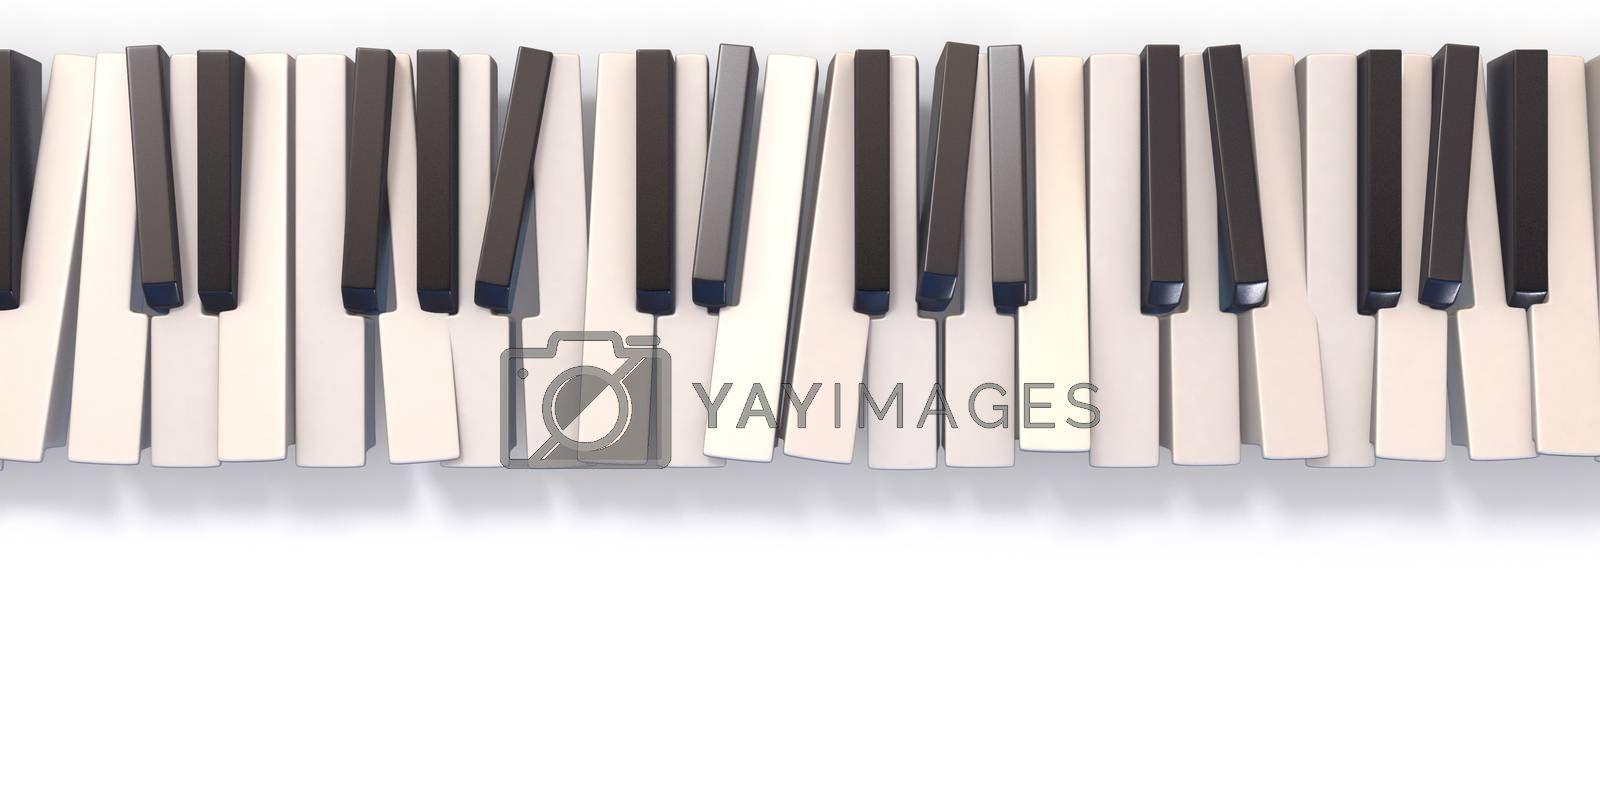 Unordered abstract piano keyboard 3D by djmilic